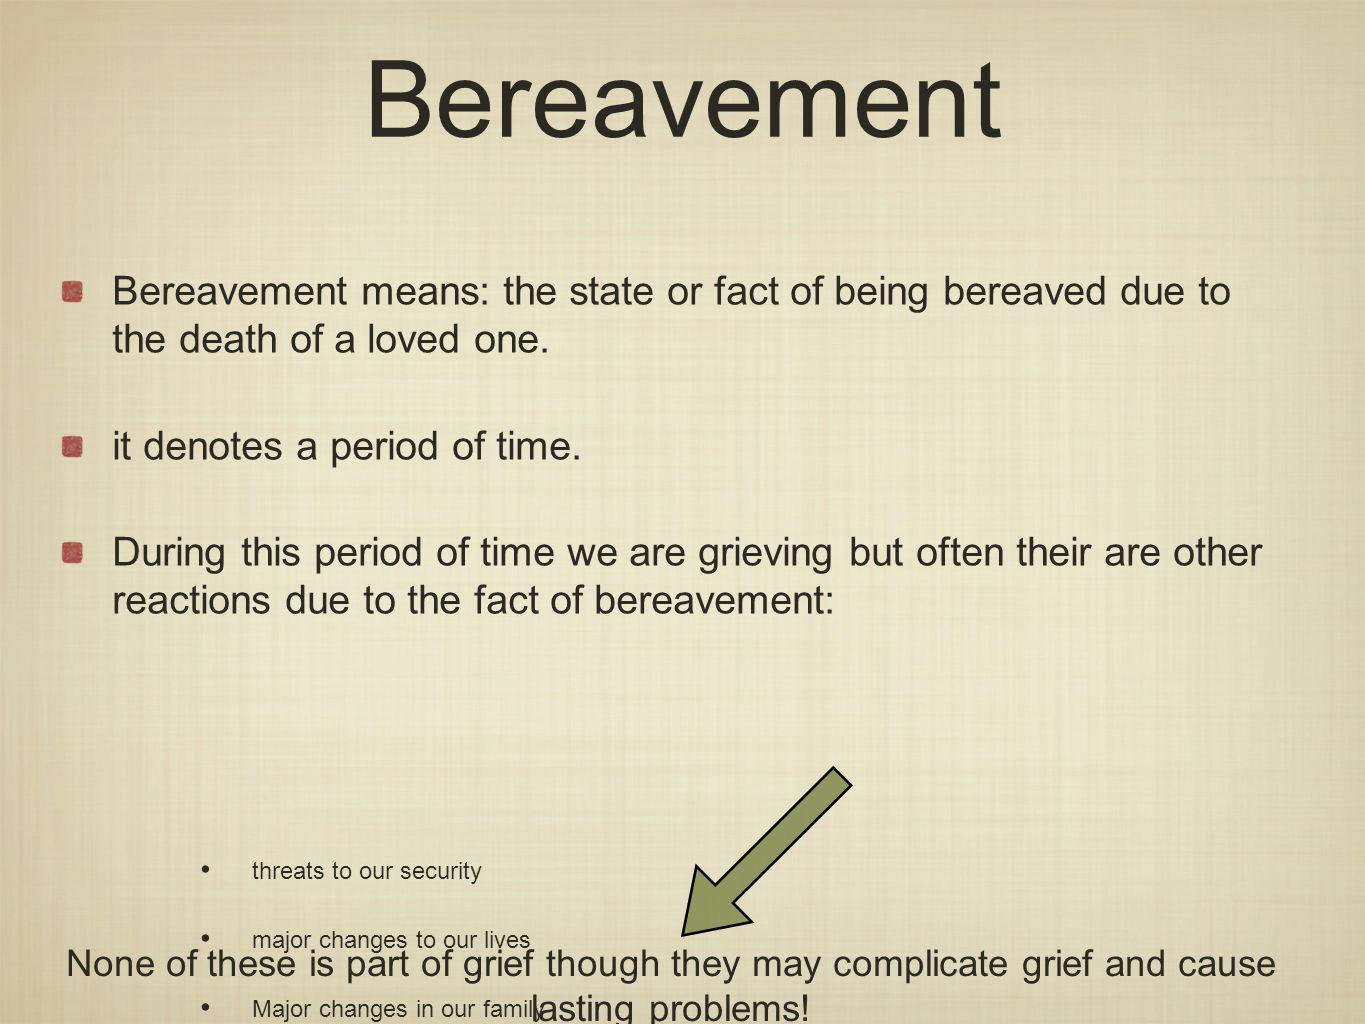 Bereavement means: the state or fact of being bereaved due to the death of a loved one.